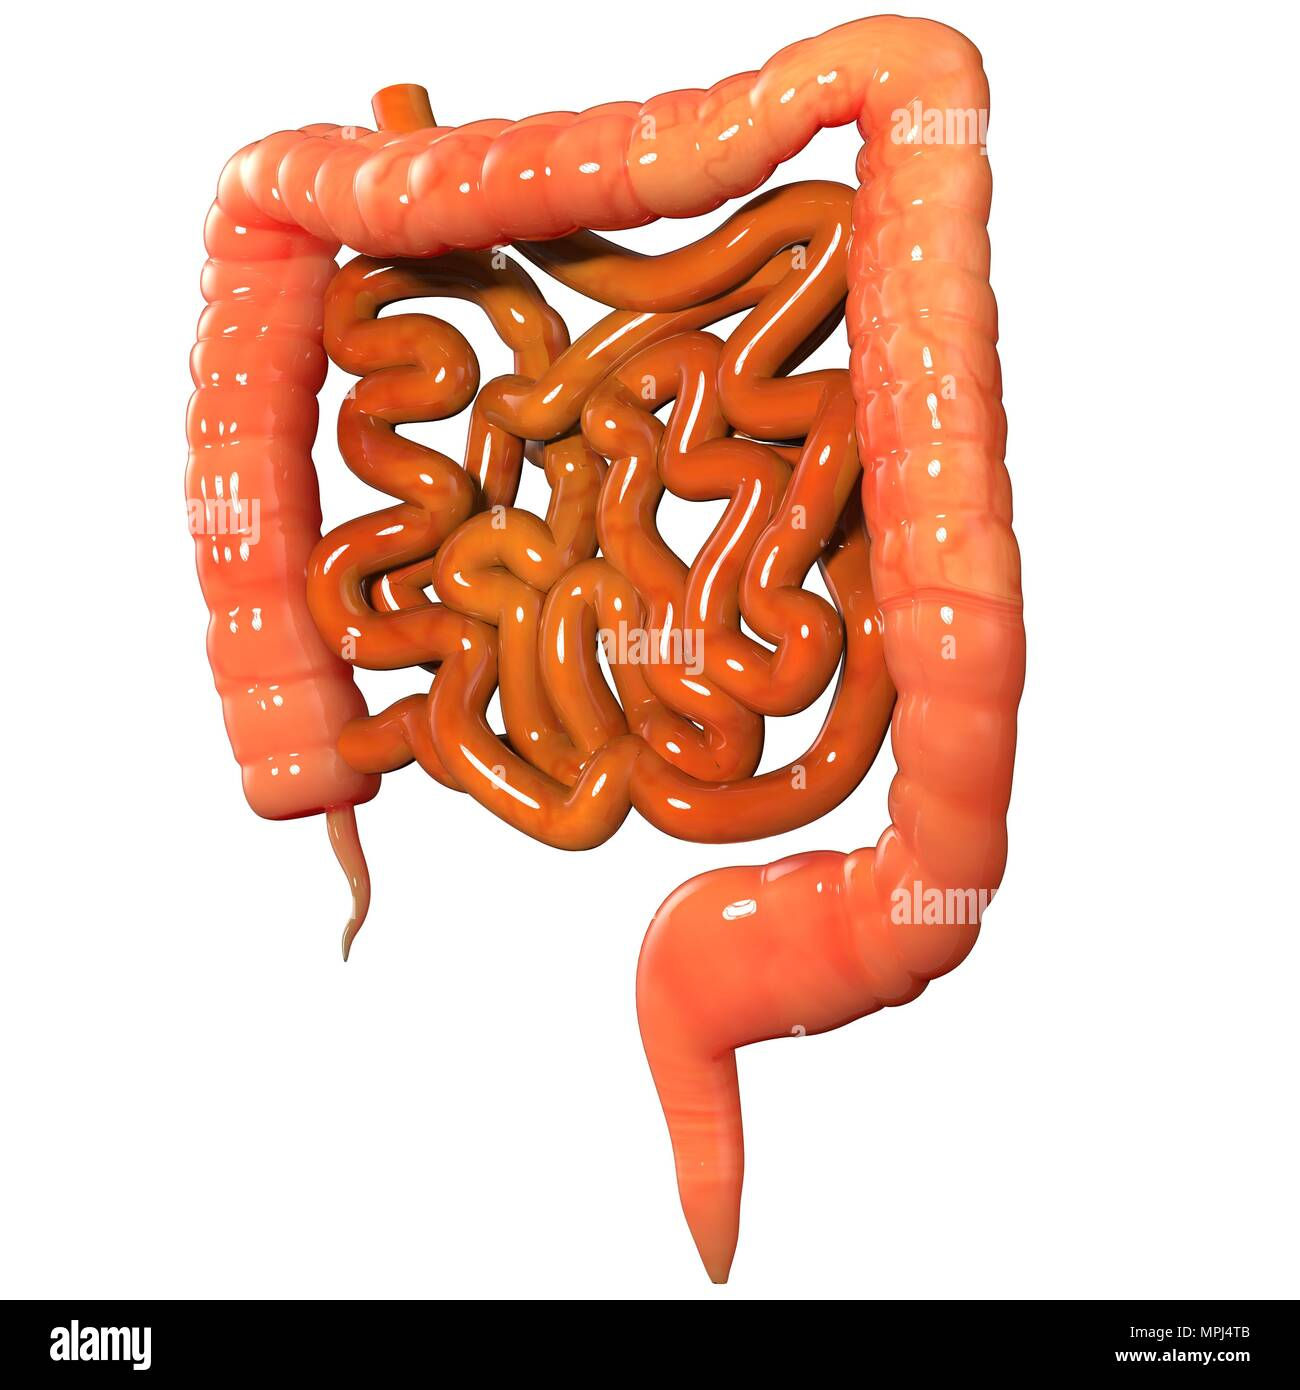 Human Digestive System Large And Small Intestine Anatomy Stock Photo